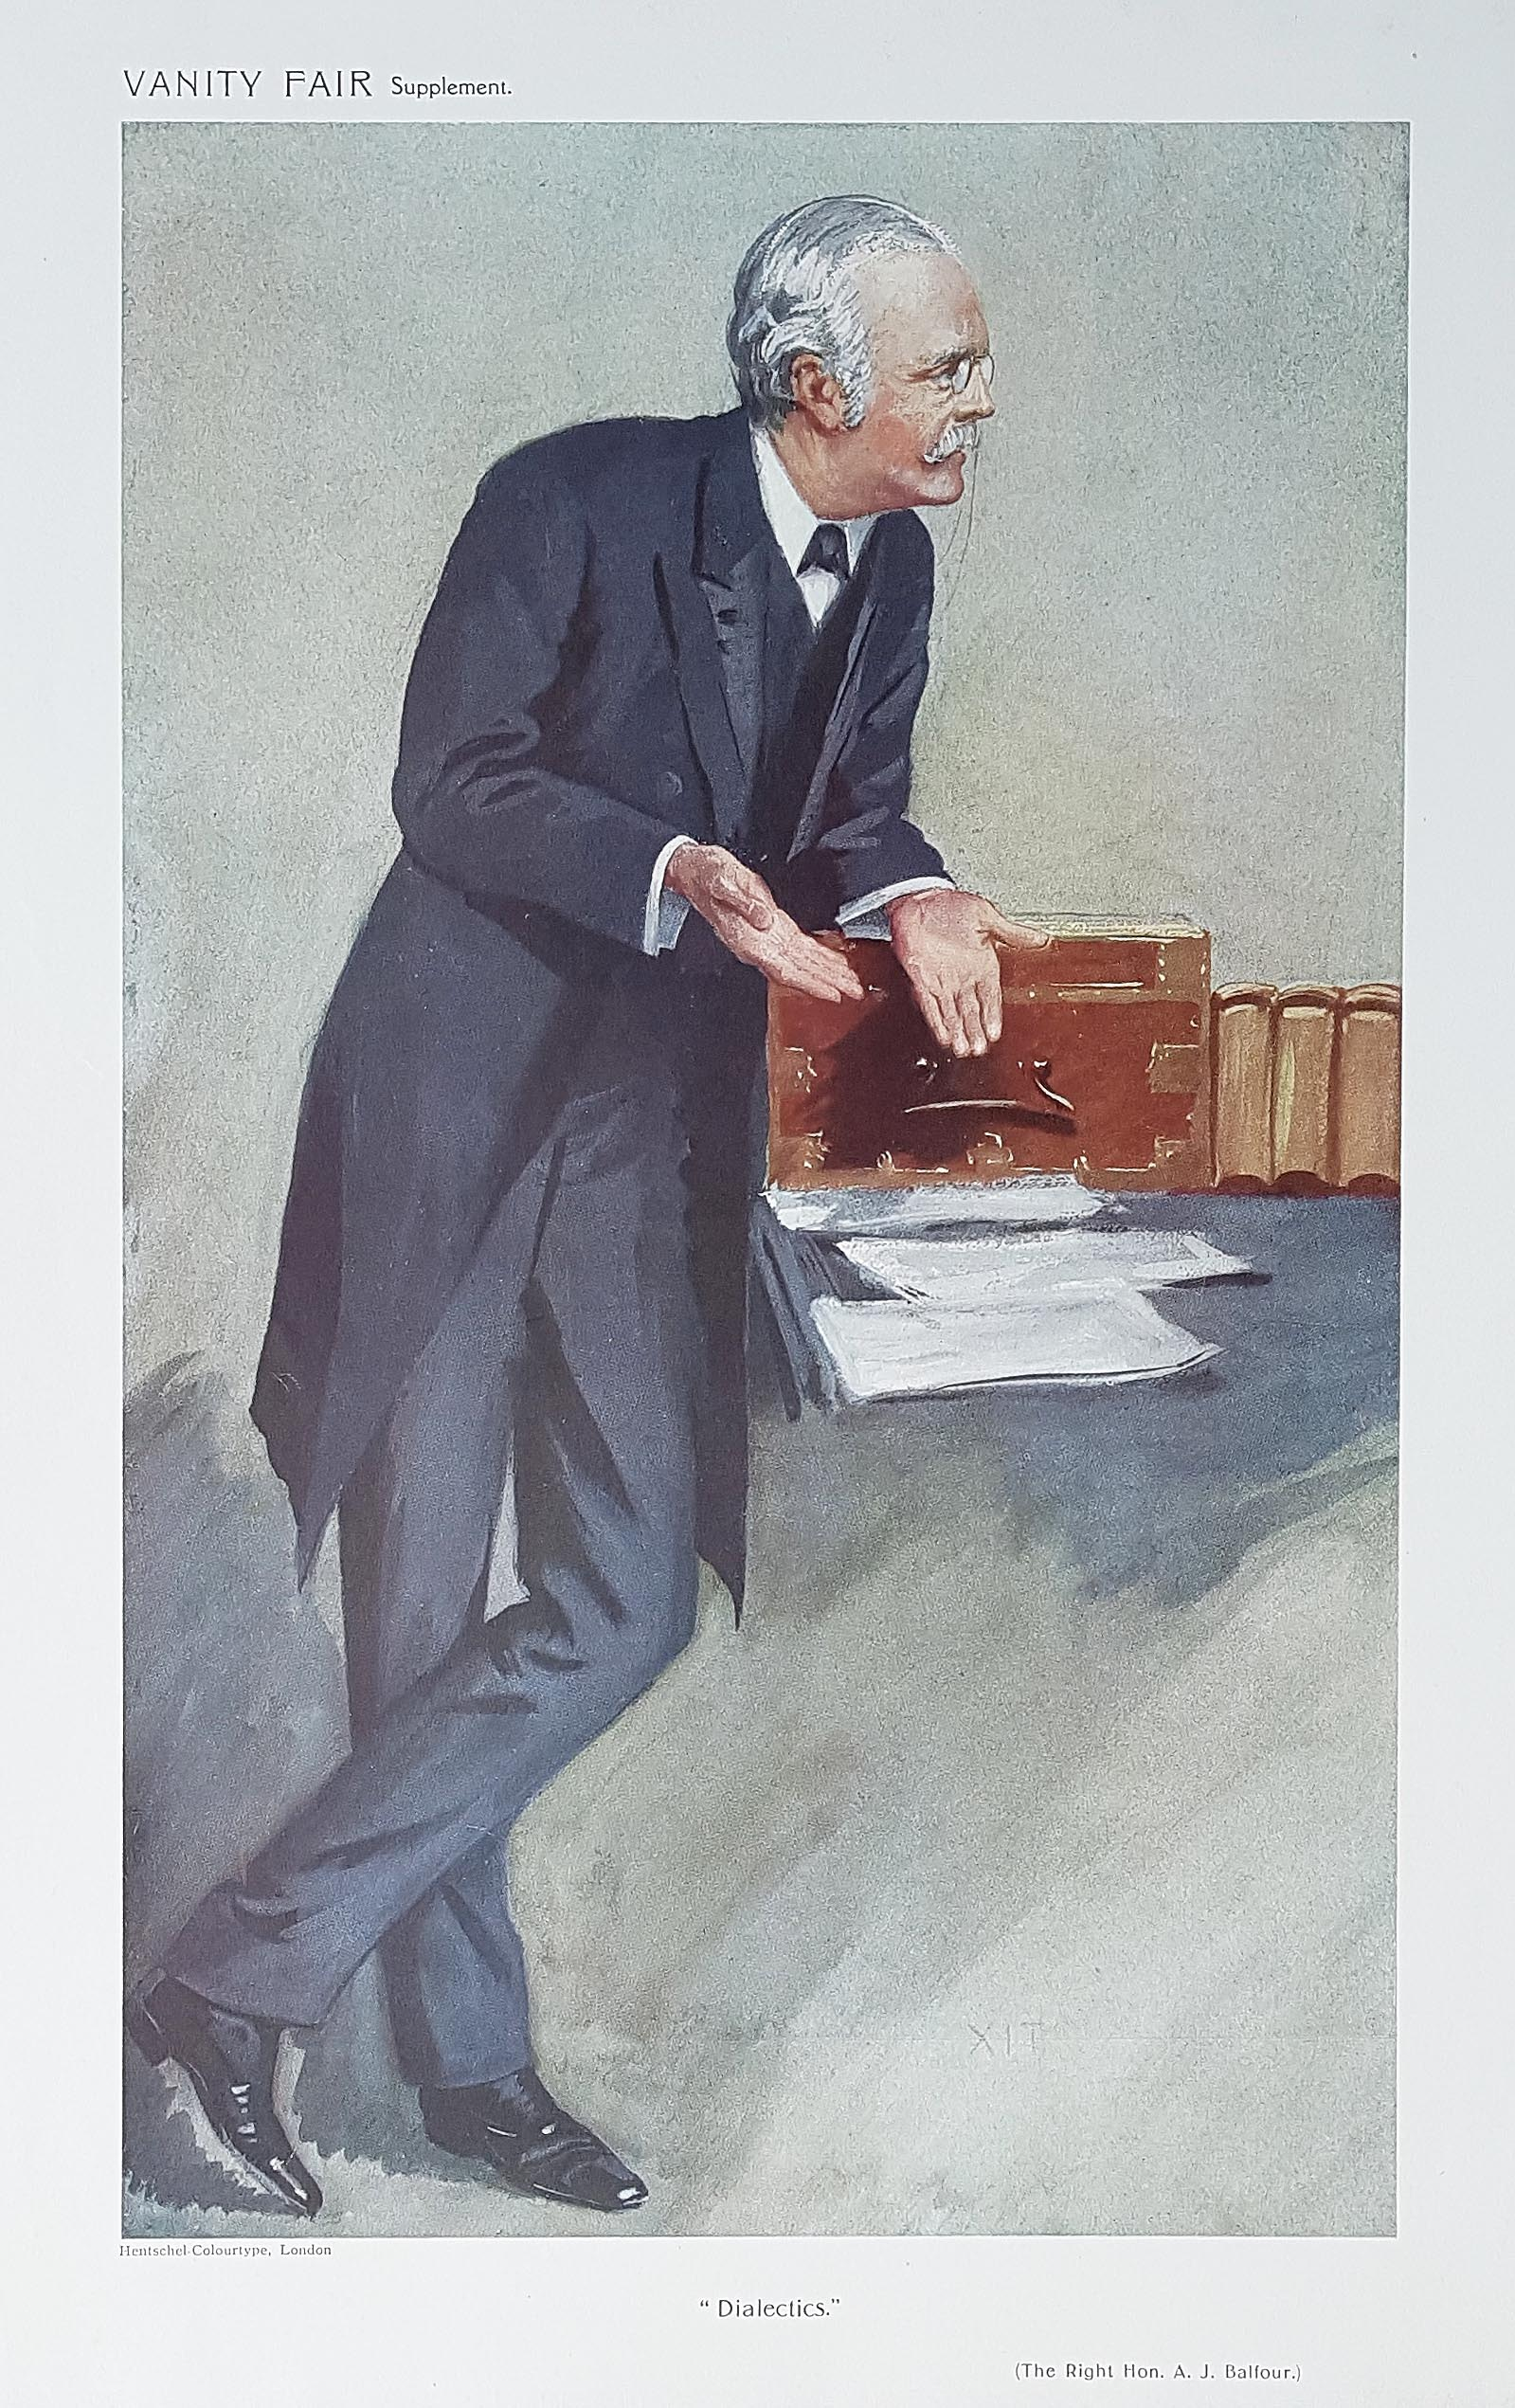 Original Vanity Fair  Print of The Right Hon. A. J. Balfour for sale